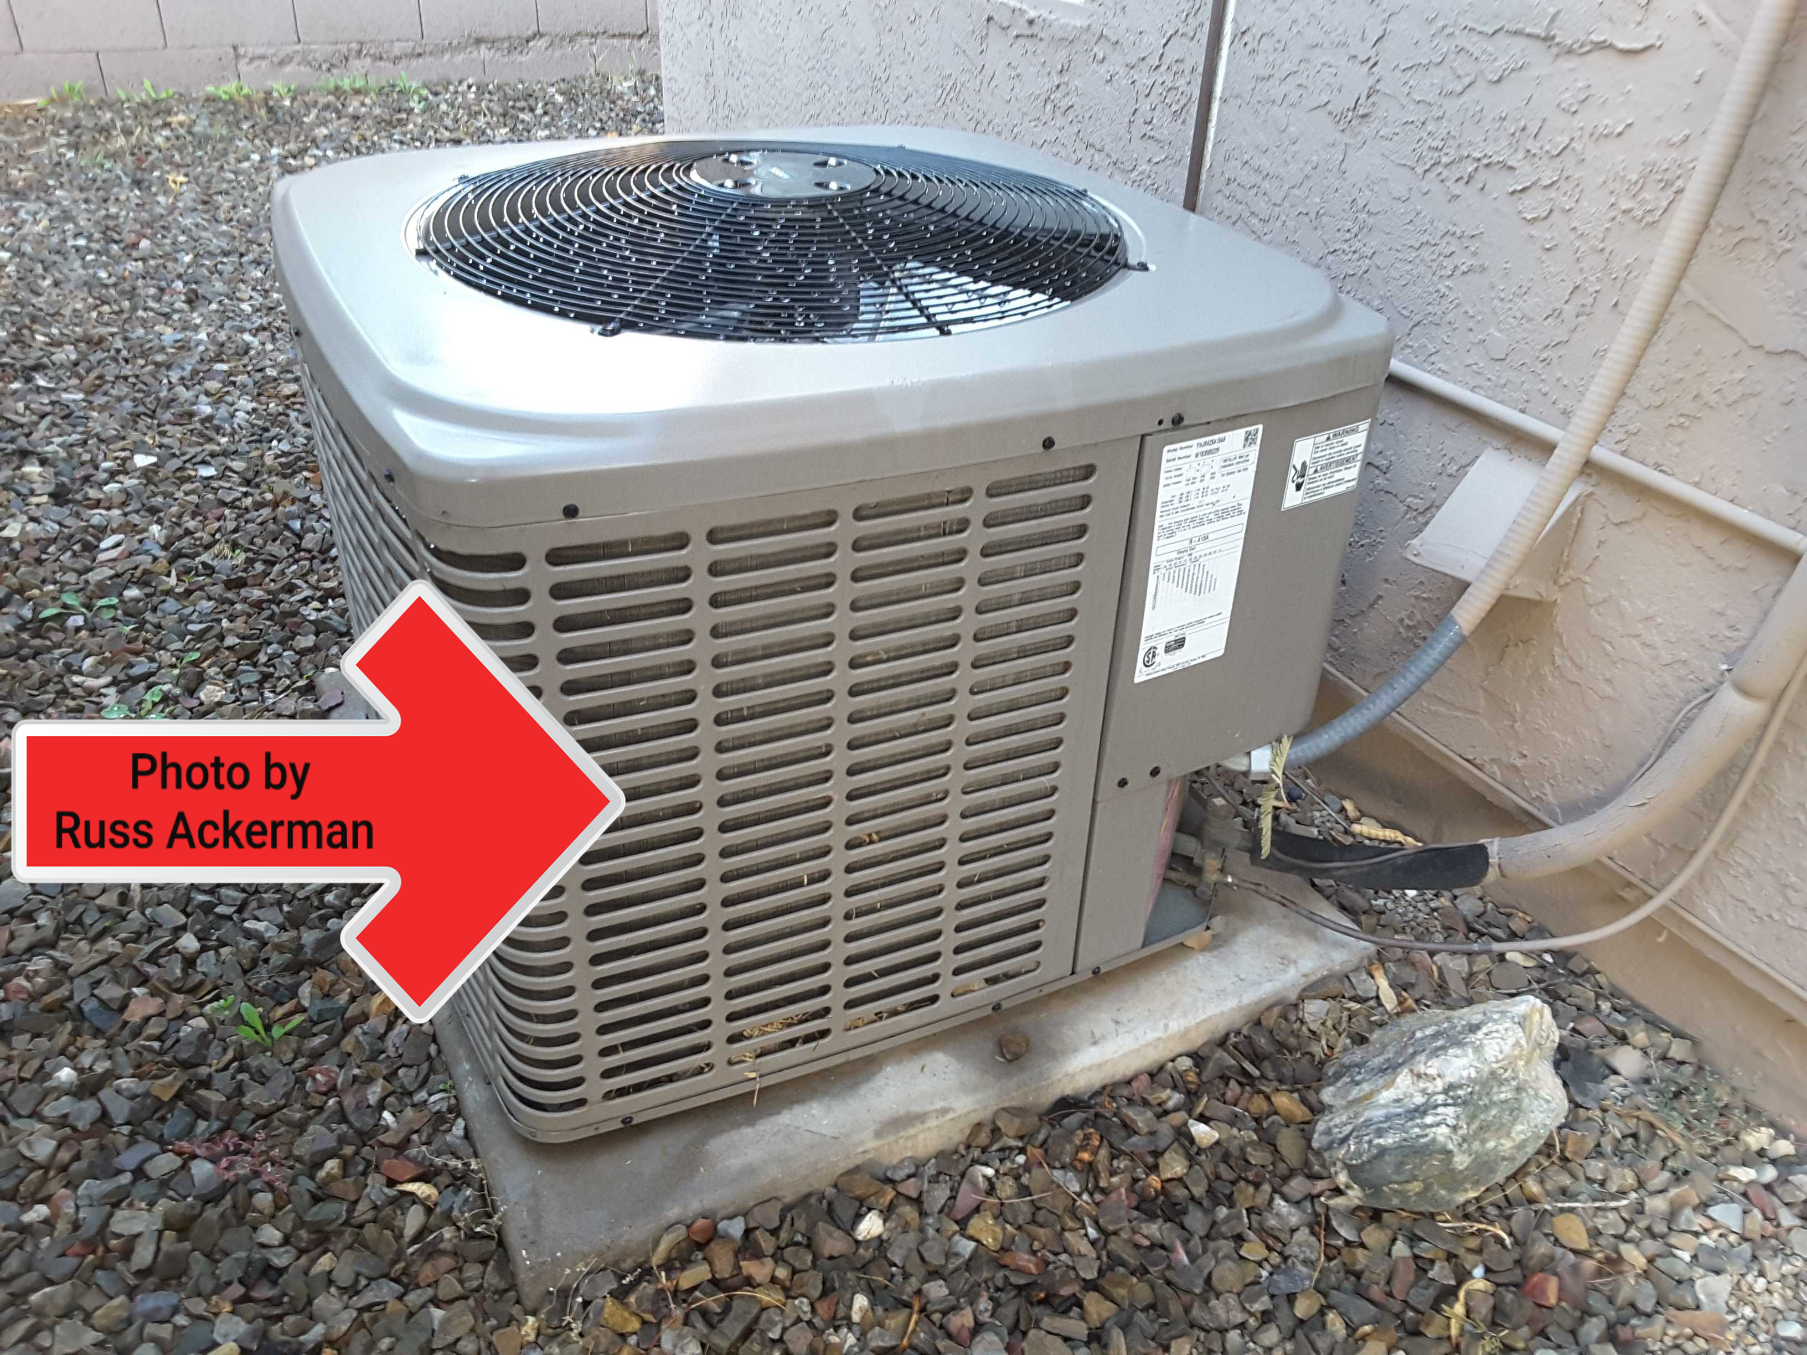 During summer dust storms, turn your HVAC system off to avoid clogging up your condenser coils and keep the dust down inside your home.